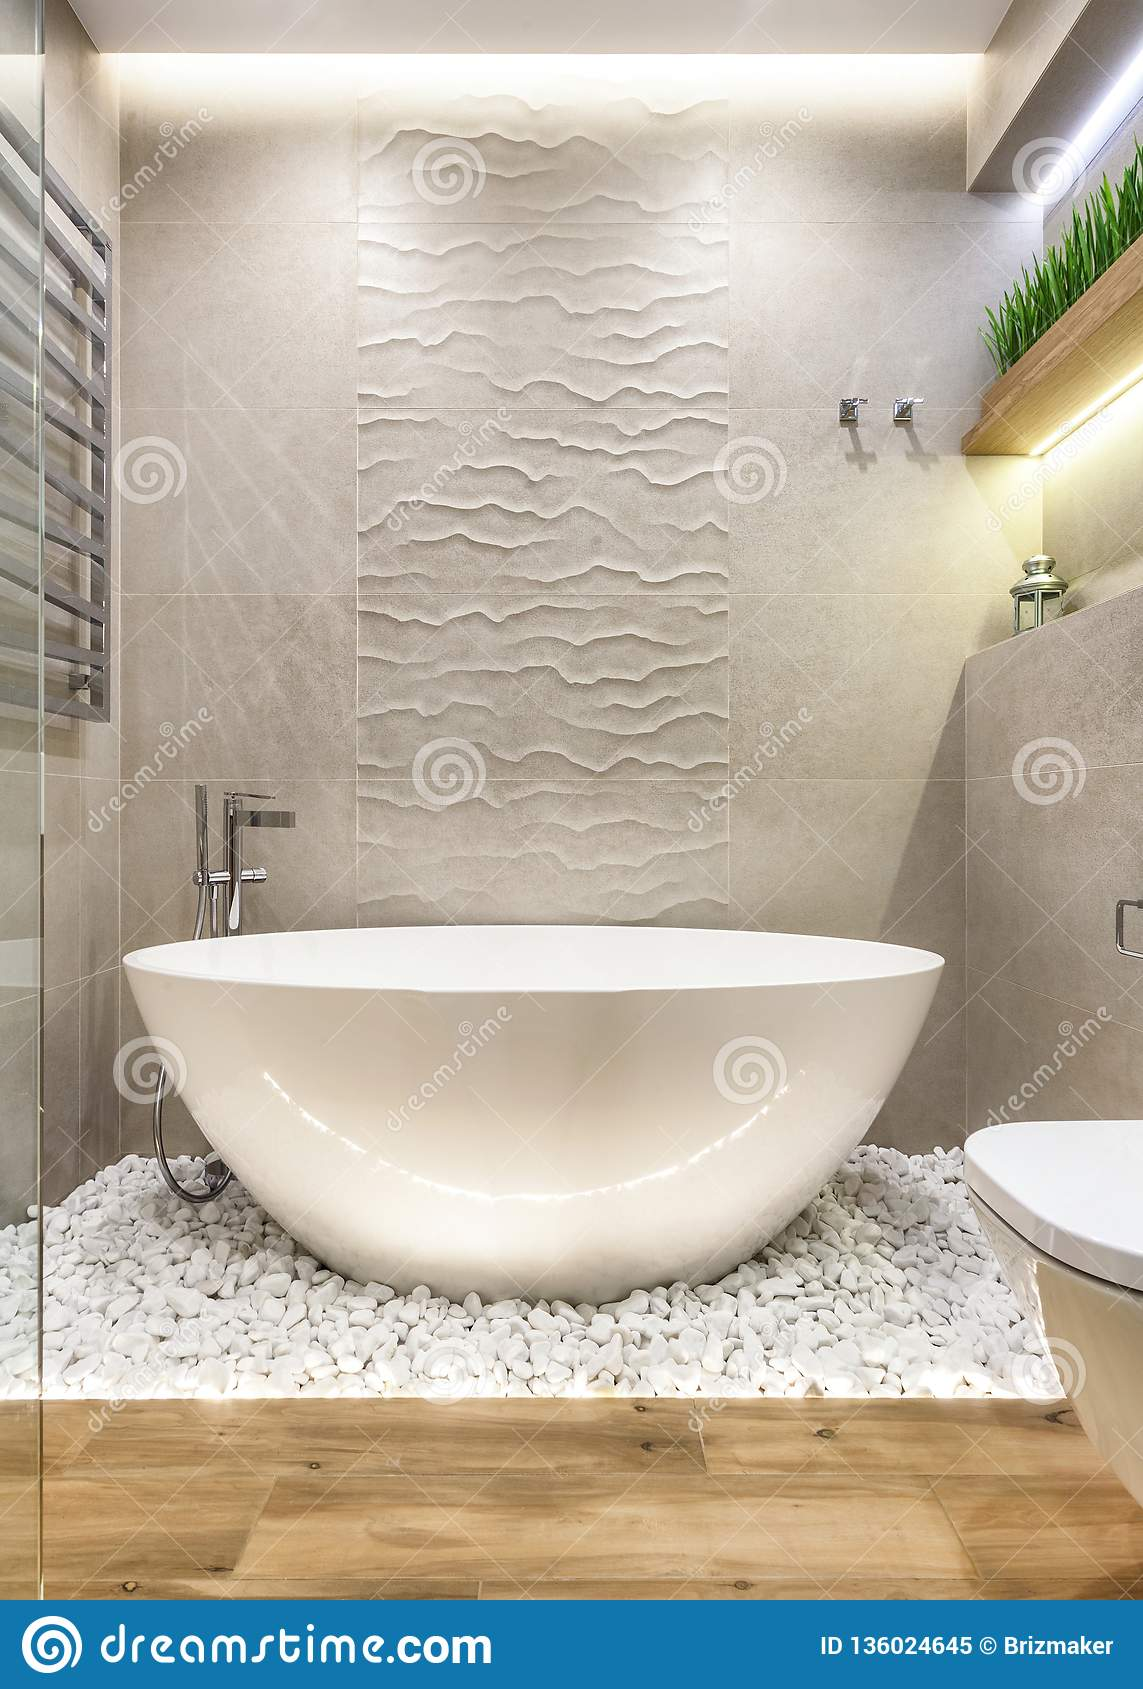 Luxury Bathroom Design With Simple And Minimal Elements Stock Image Image Of Bathtub Home 136024645